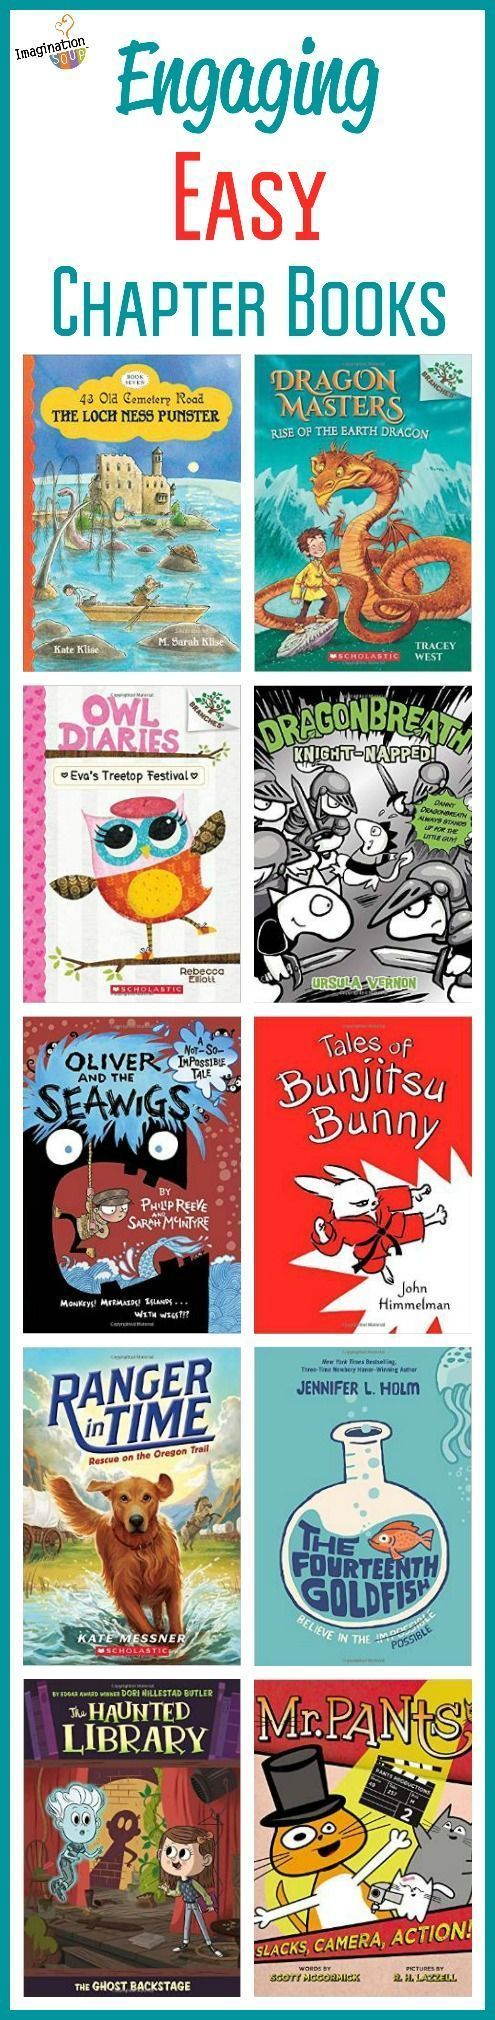 Introducing ten new beginning chapter books for your beginning readers with fun, adventure, hilarity, and curiosity . . . perfect for your kids needing a good book to read and adore. From @melissa_taylor2